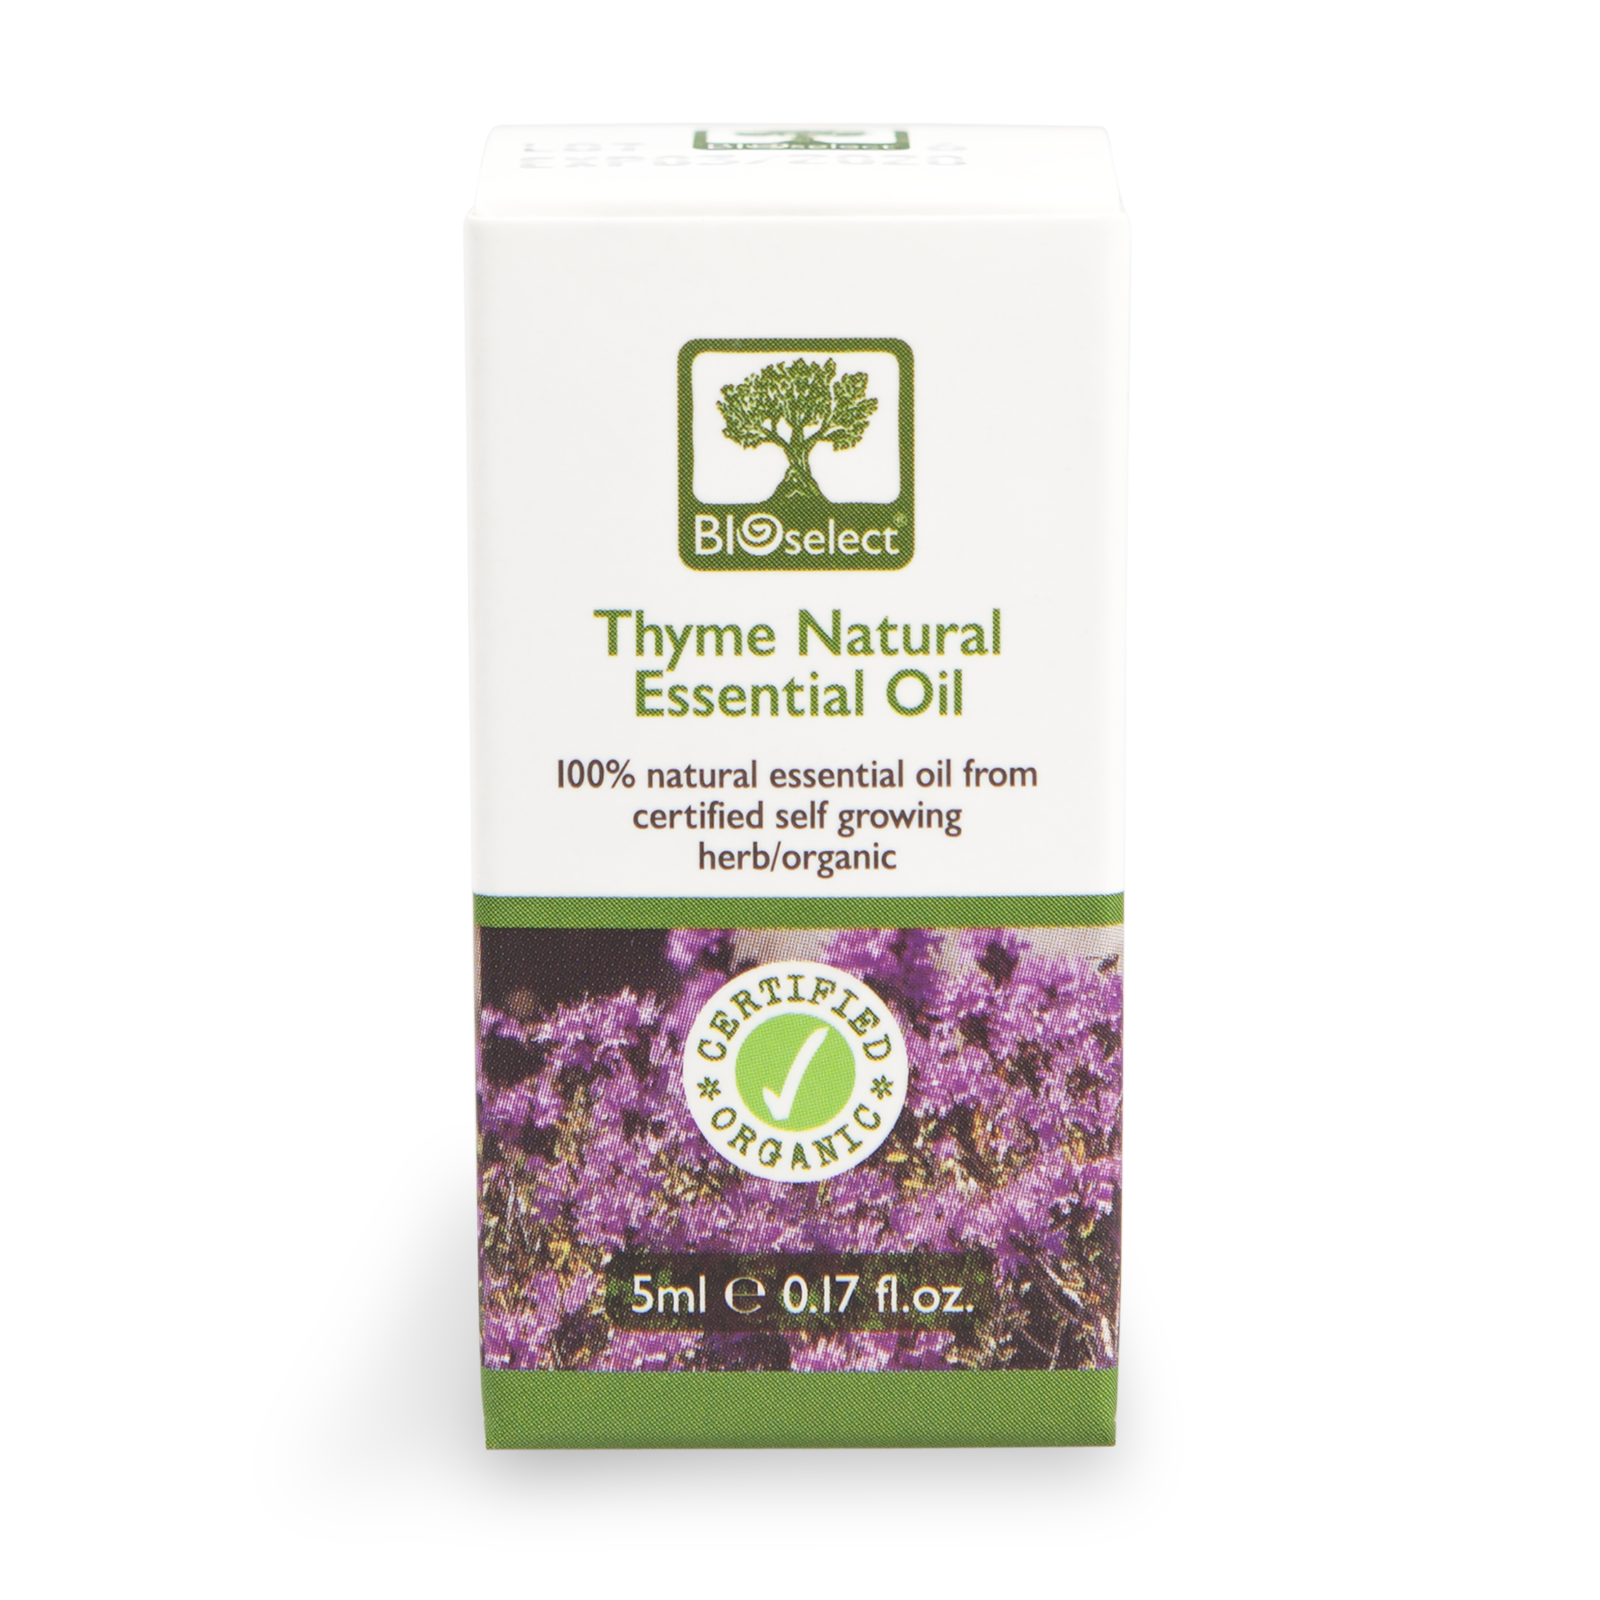 Bioselect Thyme Natural Essential Oil Certified Organic